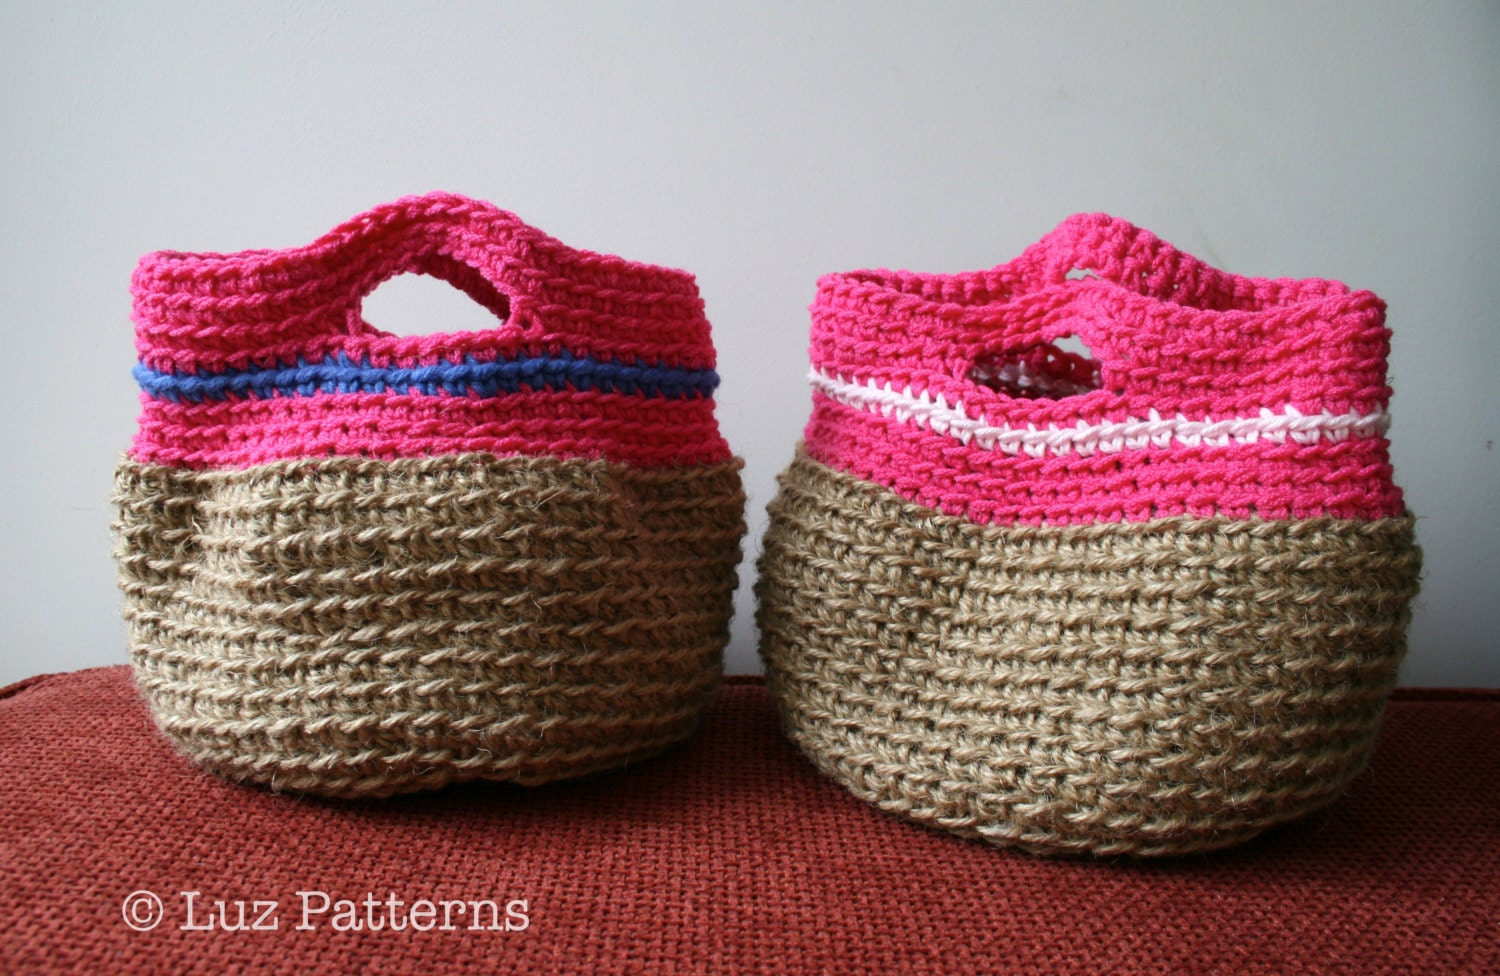 Crochet pattern crochet purse pattern instant download crochet crochet pattern crochet purse pattern instant download crochet basket pattern girls summer bag 139 bankloansurffo Choice Image